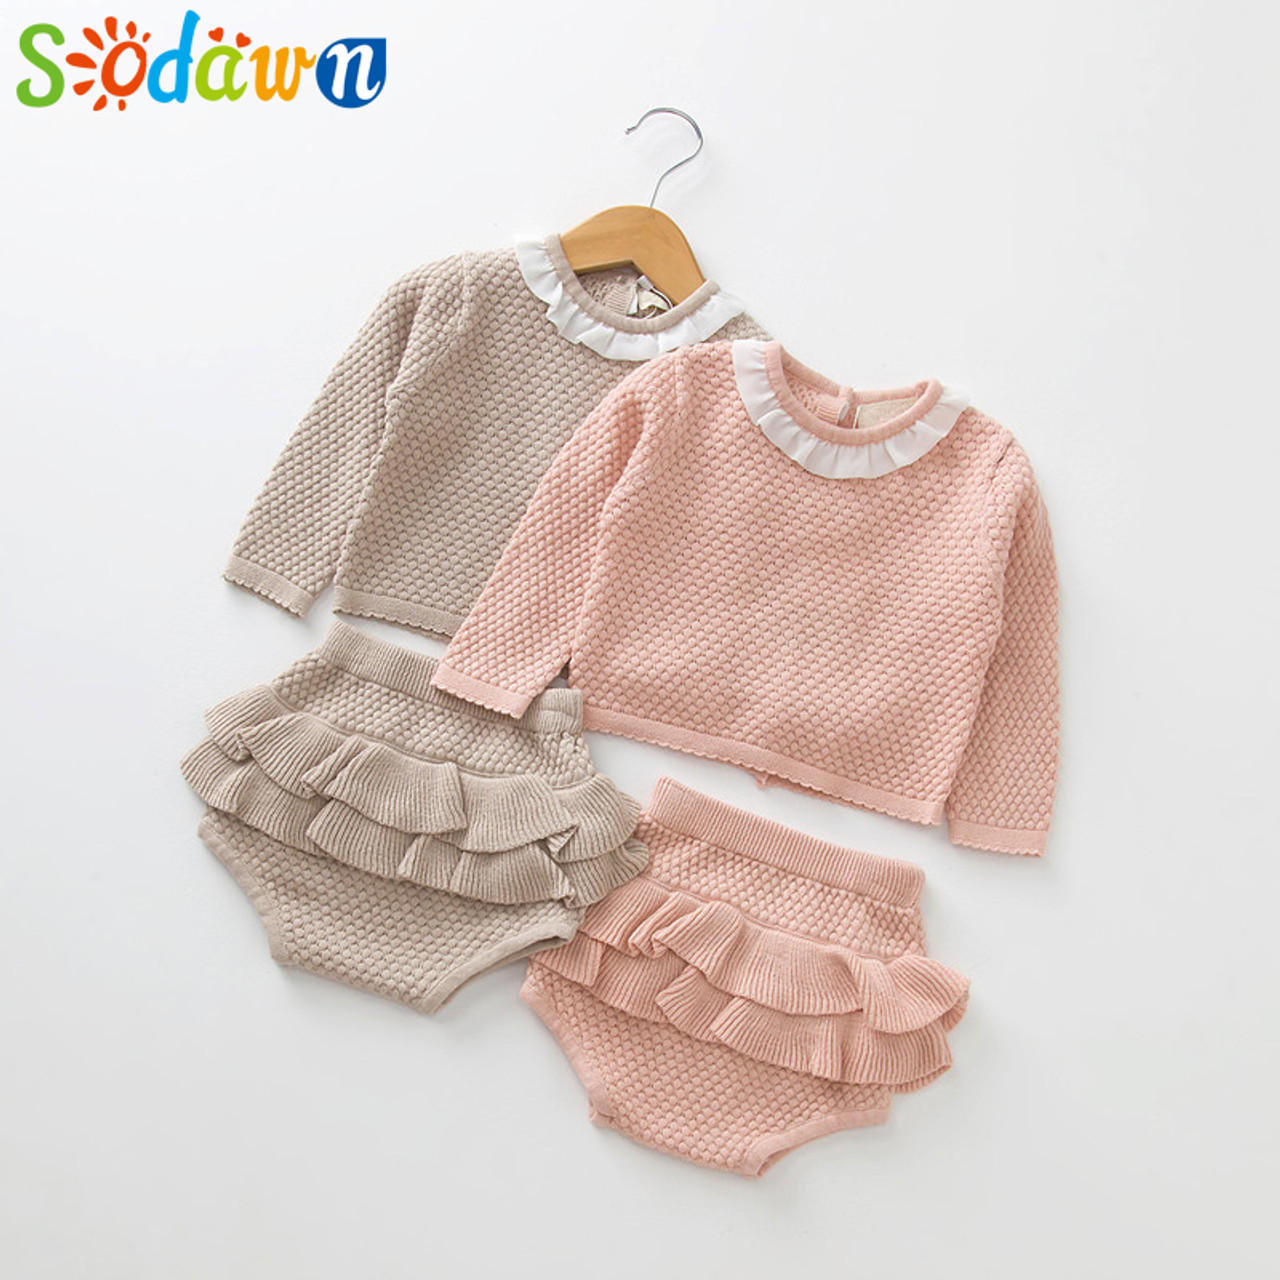 ebb547b77cc2a Sodawn 2018 New Spring Autumn Fashion Baby Girls Clothes Long Sleeve Knit  Sweater+Shorts Sets ...